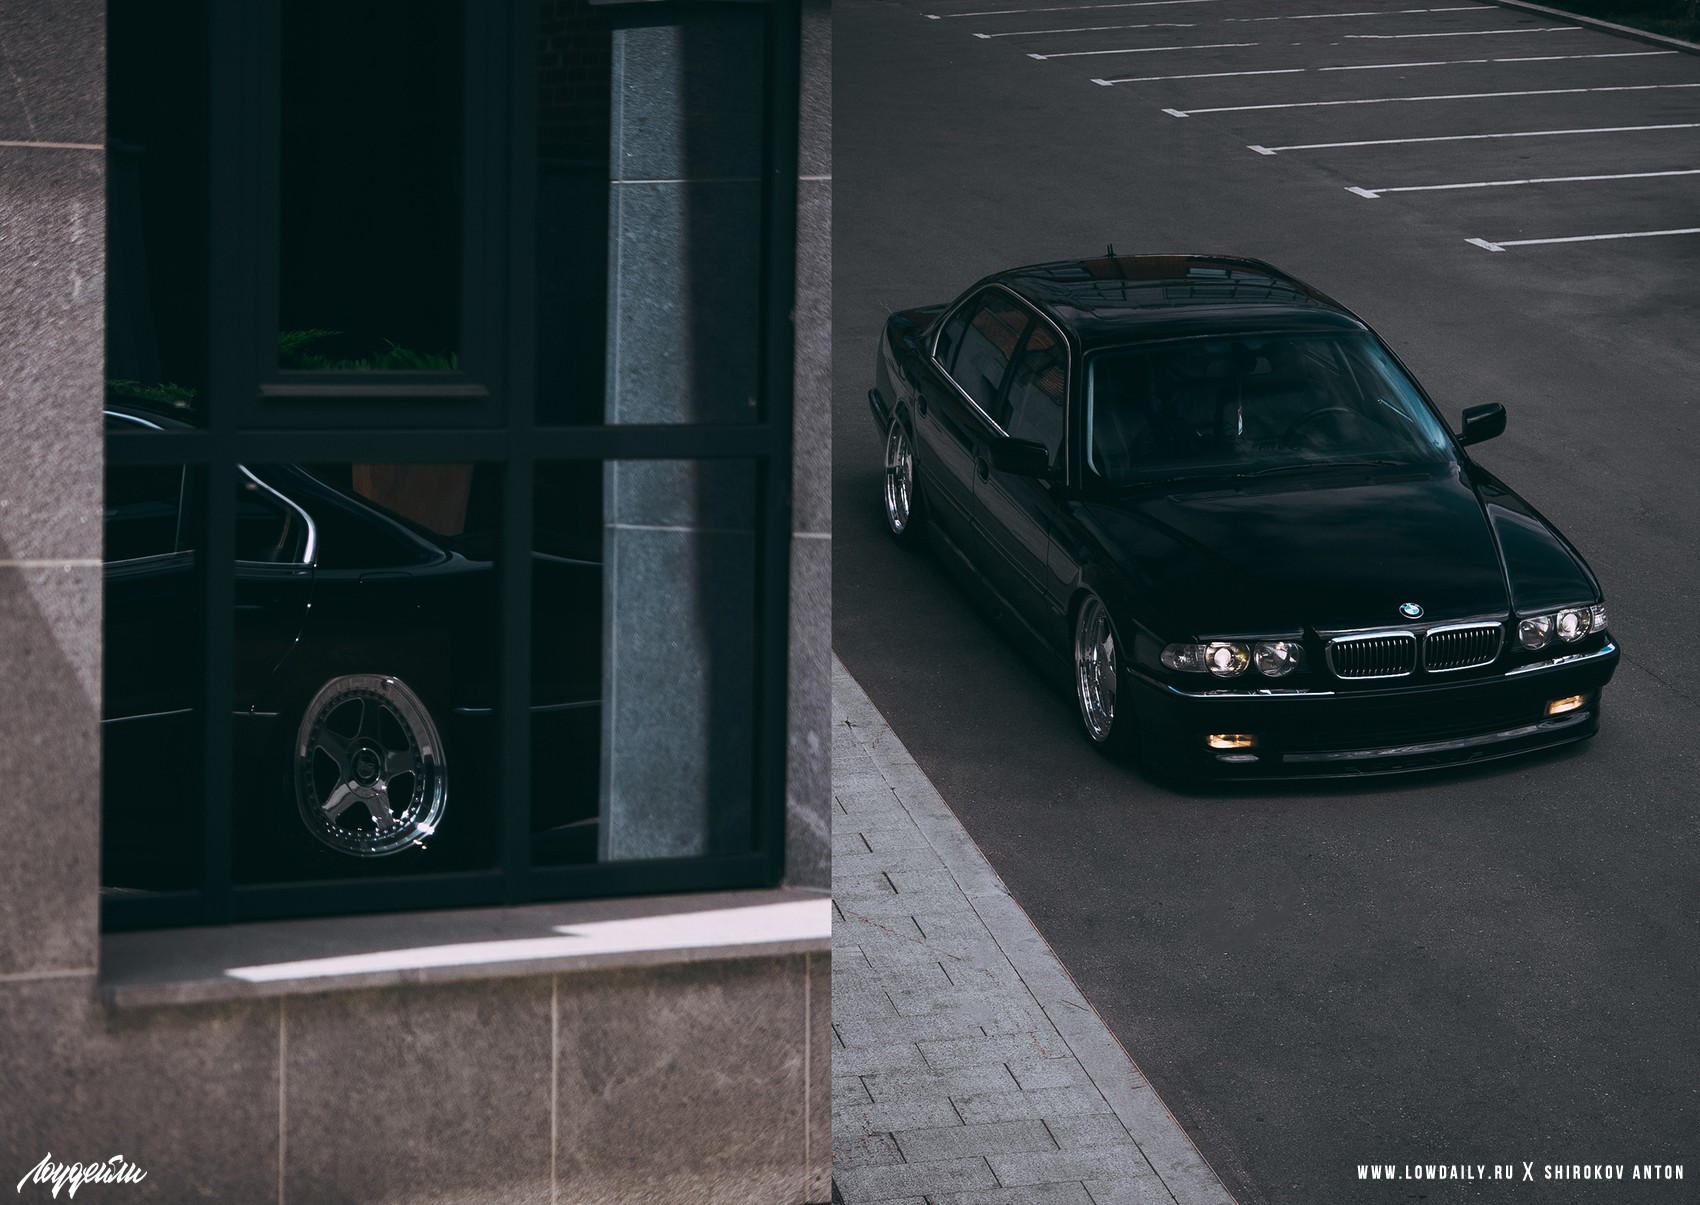 BMW E38 Lowdaily _MG_709689d